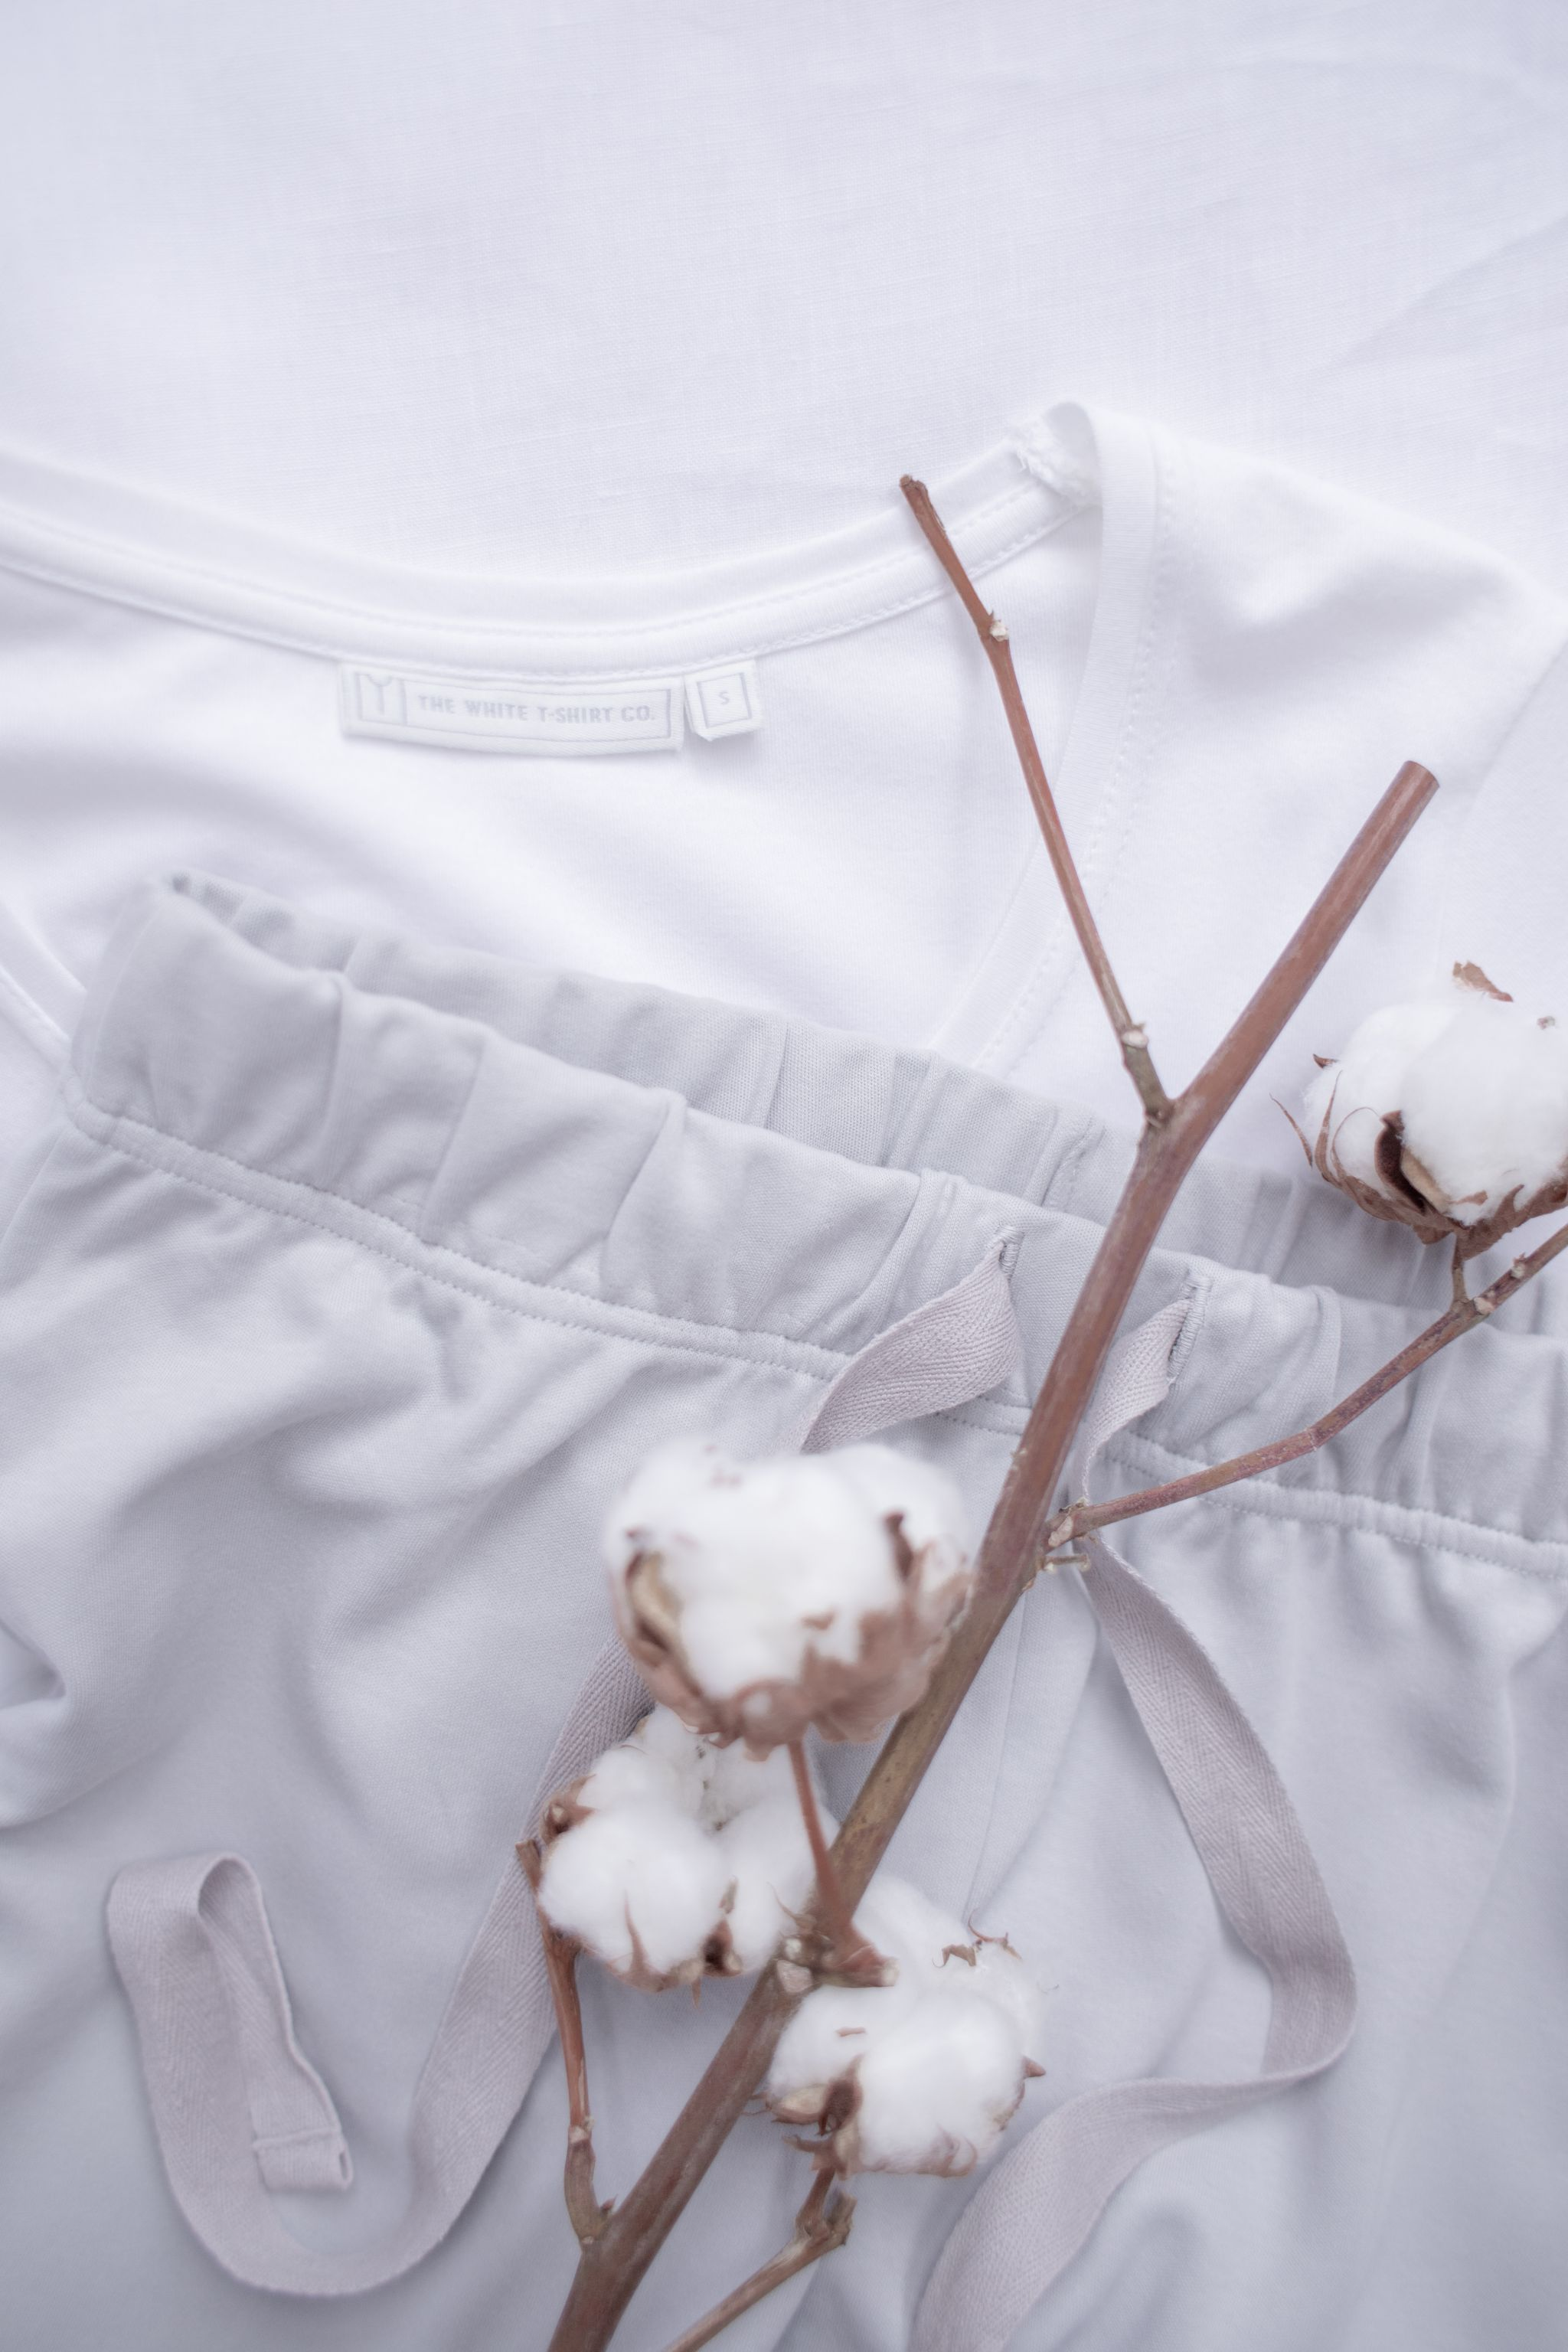 brand photography social media content creation white tshirt co dried cotton lounge nightwear